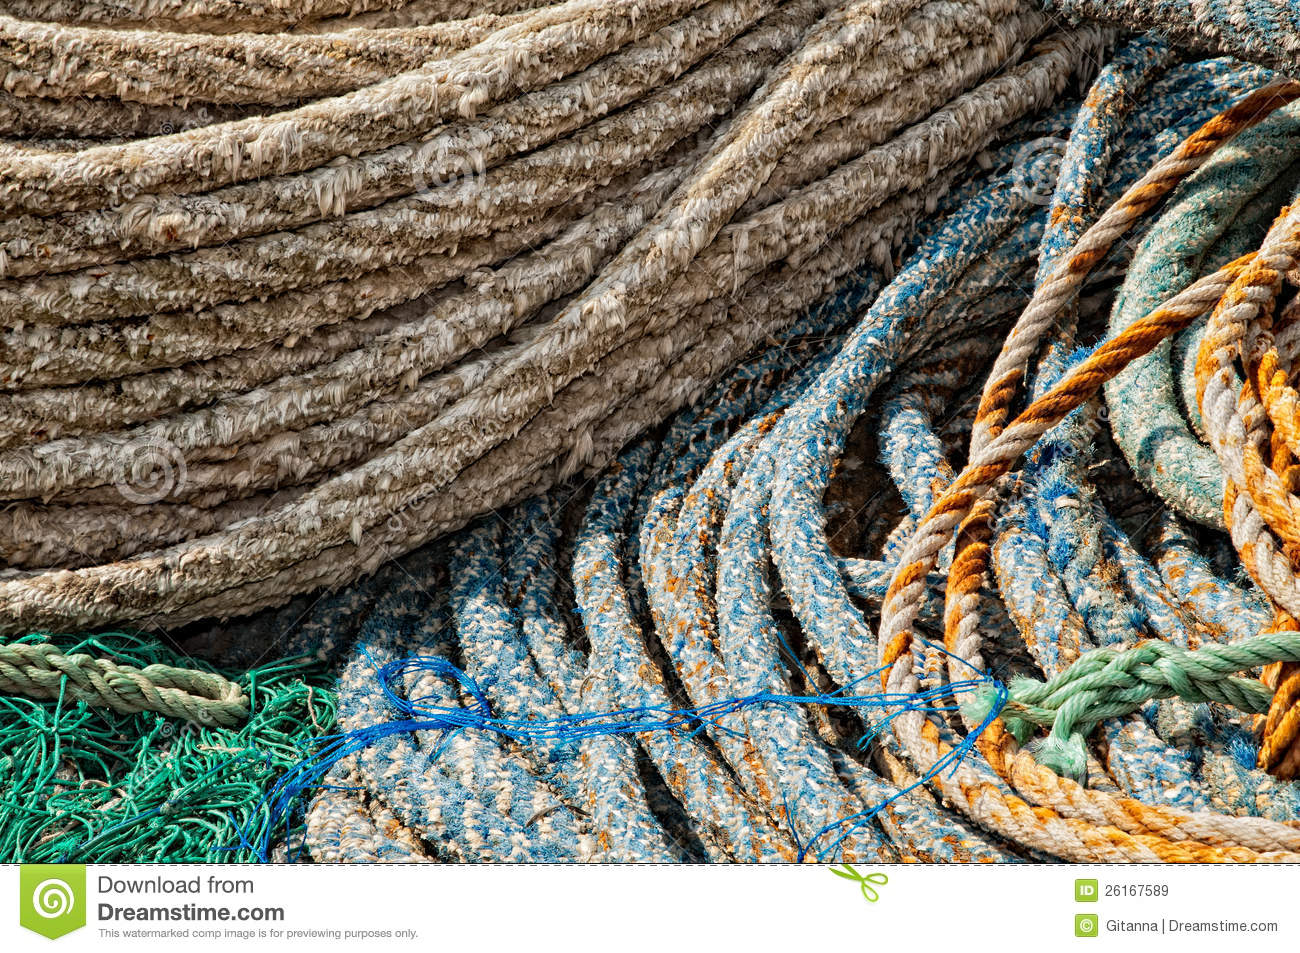 Professional fishing gear royalty free stock images for Professional fishing gear